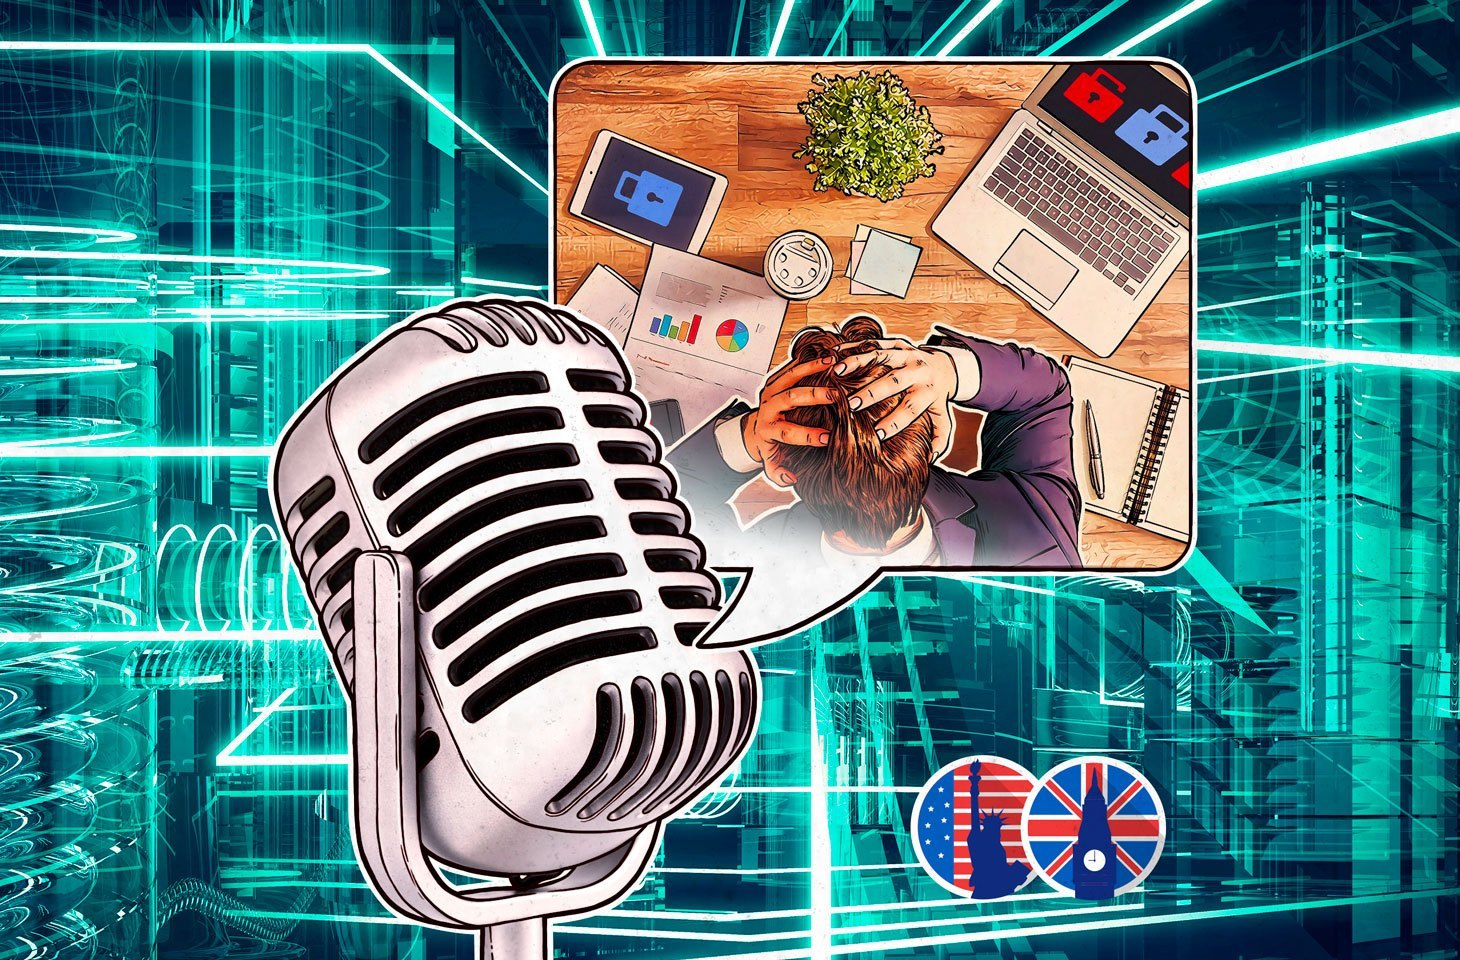 Kaspersky podcast: Firefox's security enhancements, cloned EMV cards, yet another ransomware outbreak in healthcare